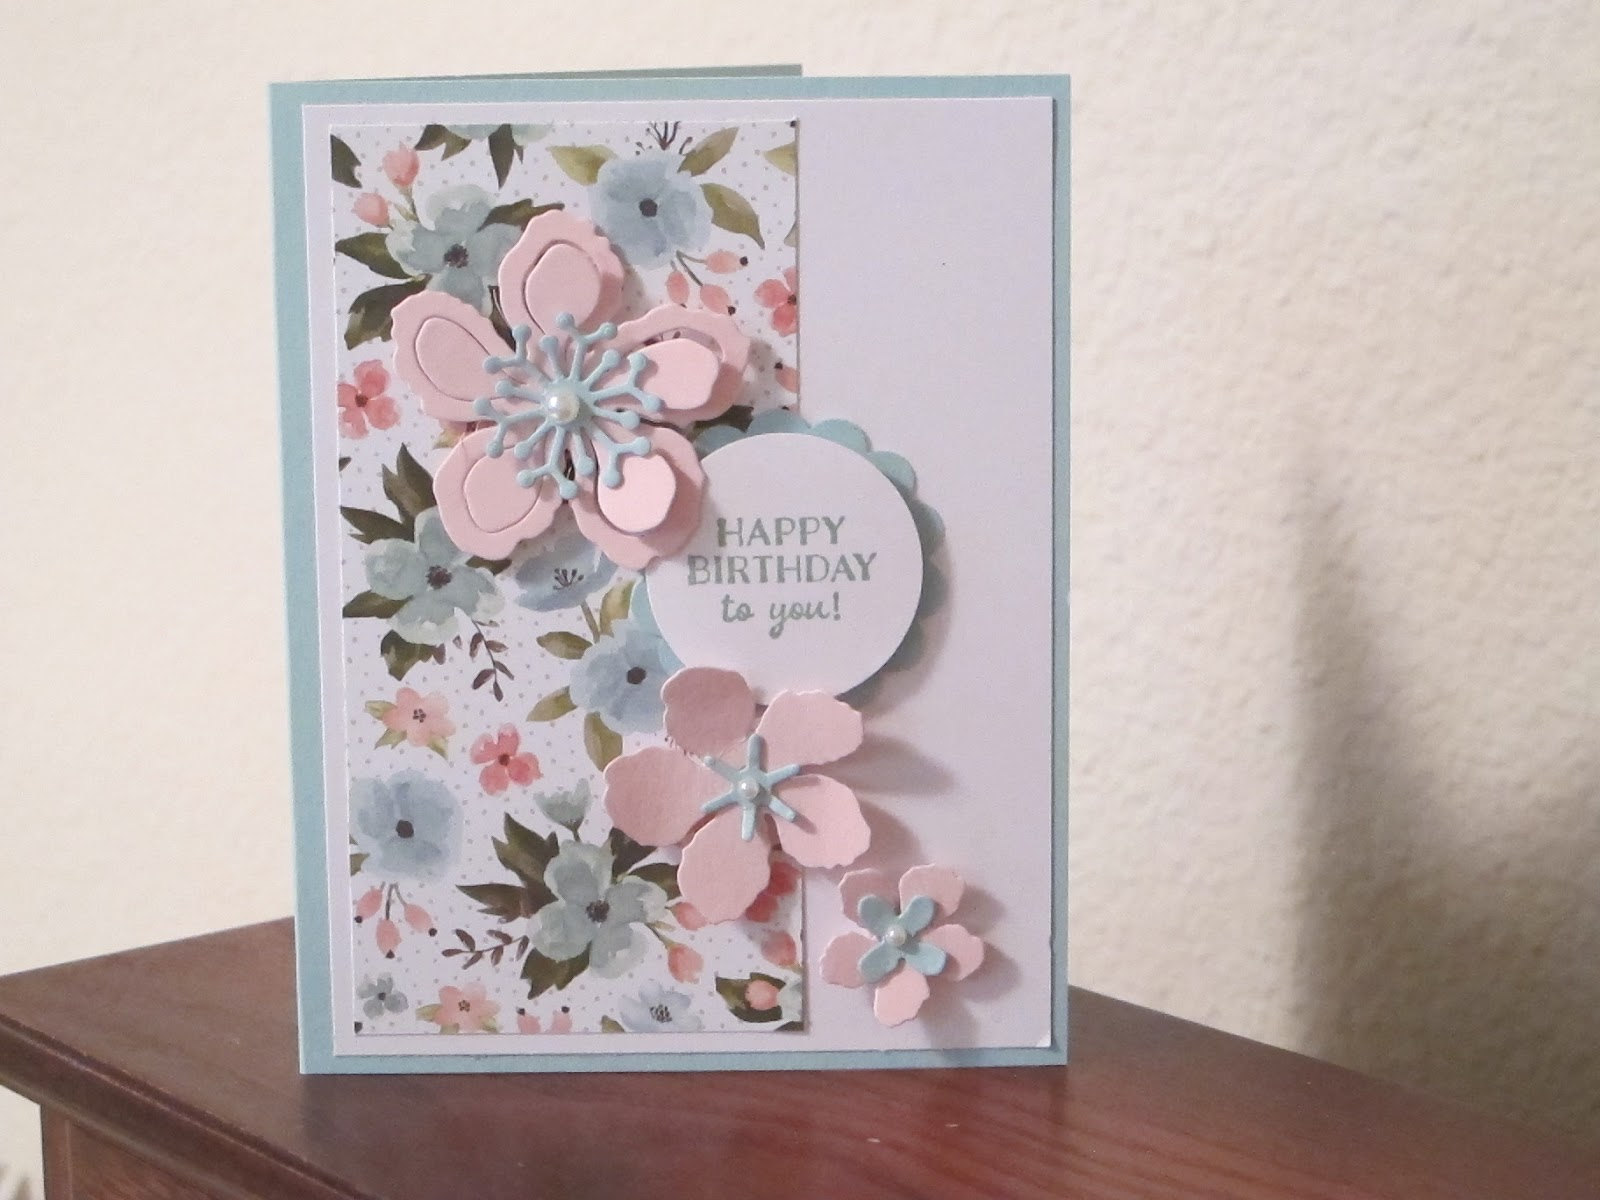 It Is A Standard 4 1 X 5 2 Inch Card Made From Mint Macaron Cut At 8 And Scored On The Long Side